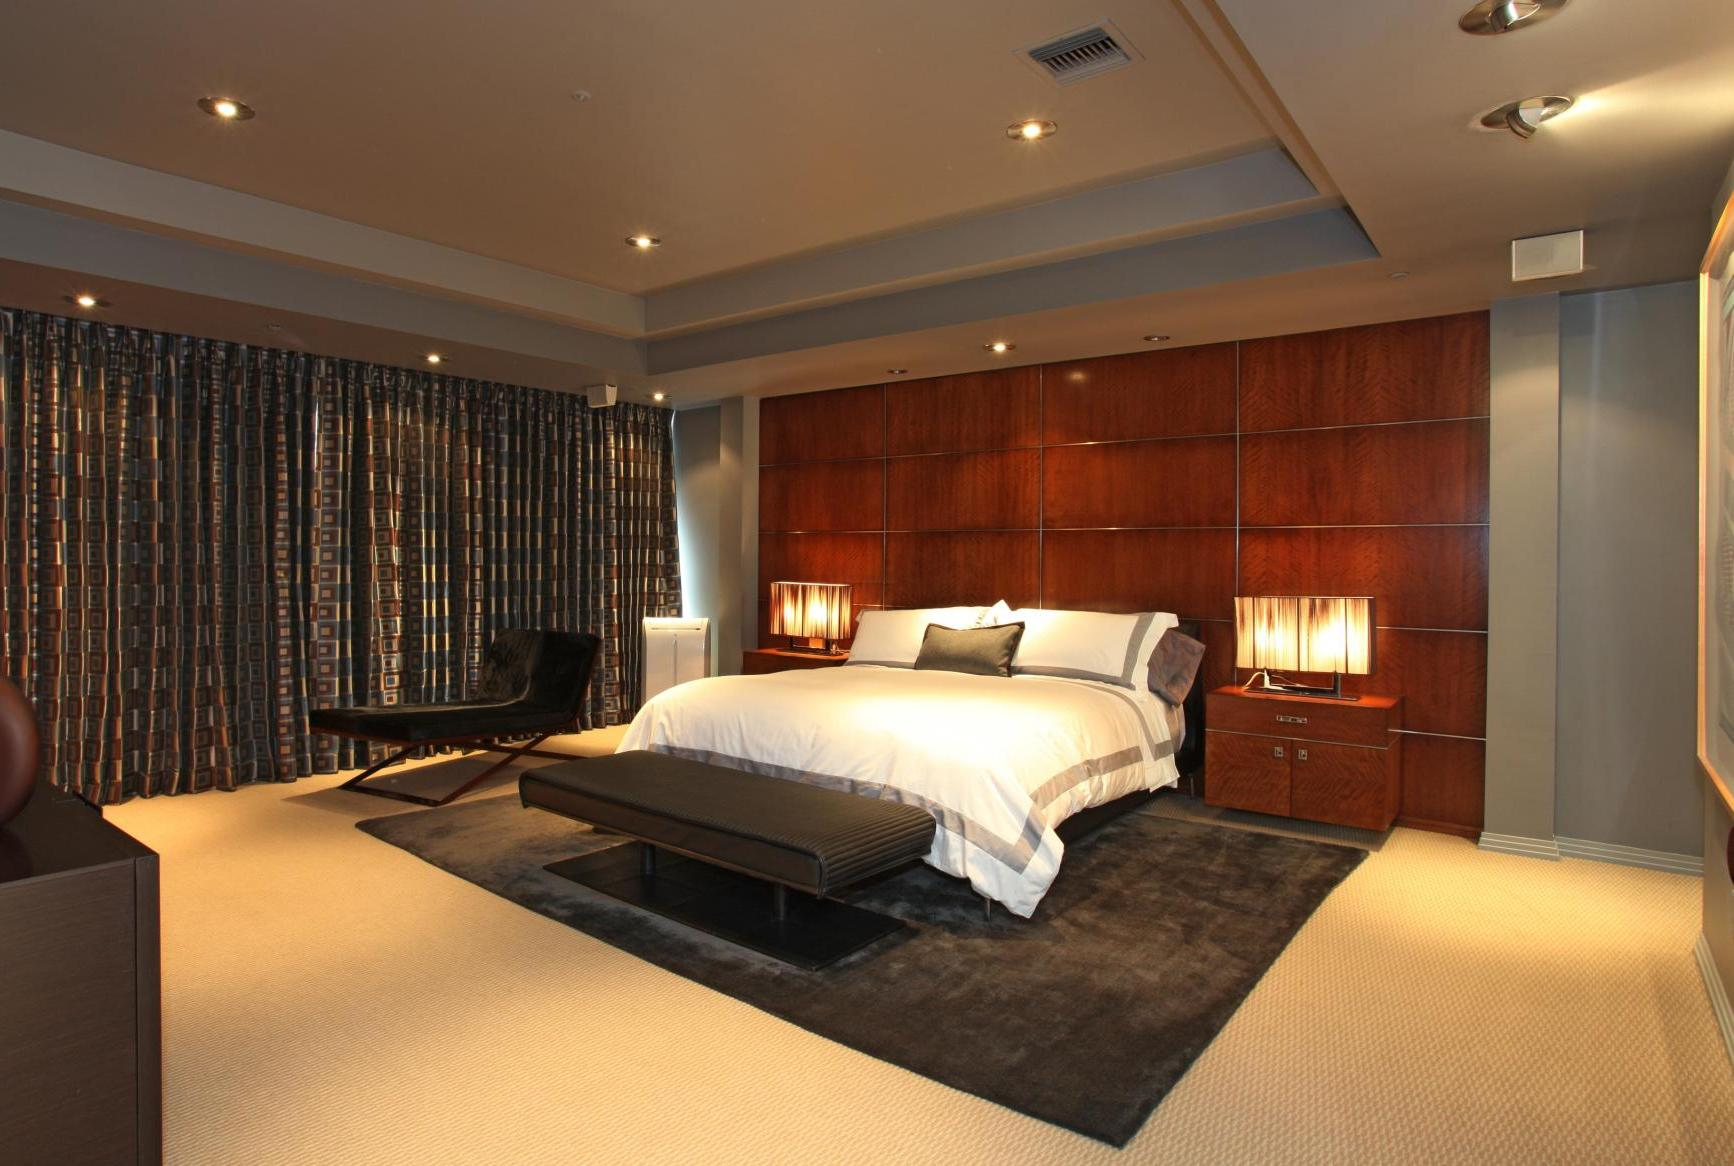 25 cool bedroom designs of 2015 for Amazing bedroom designs